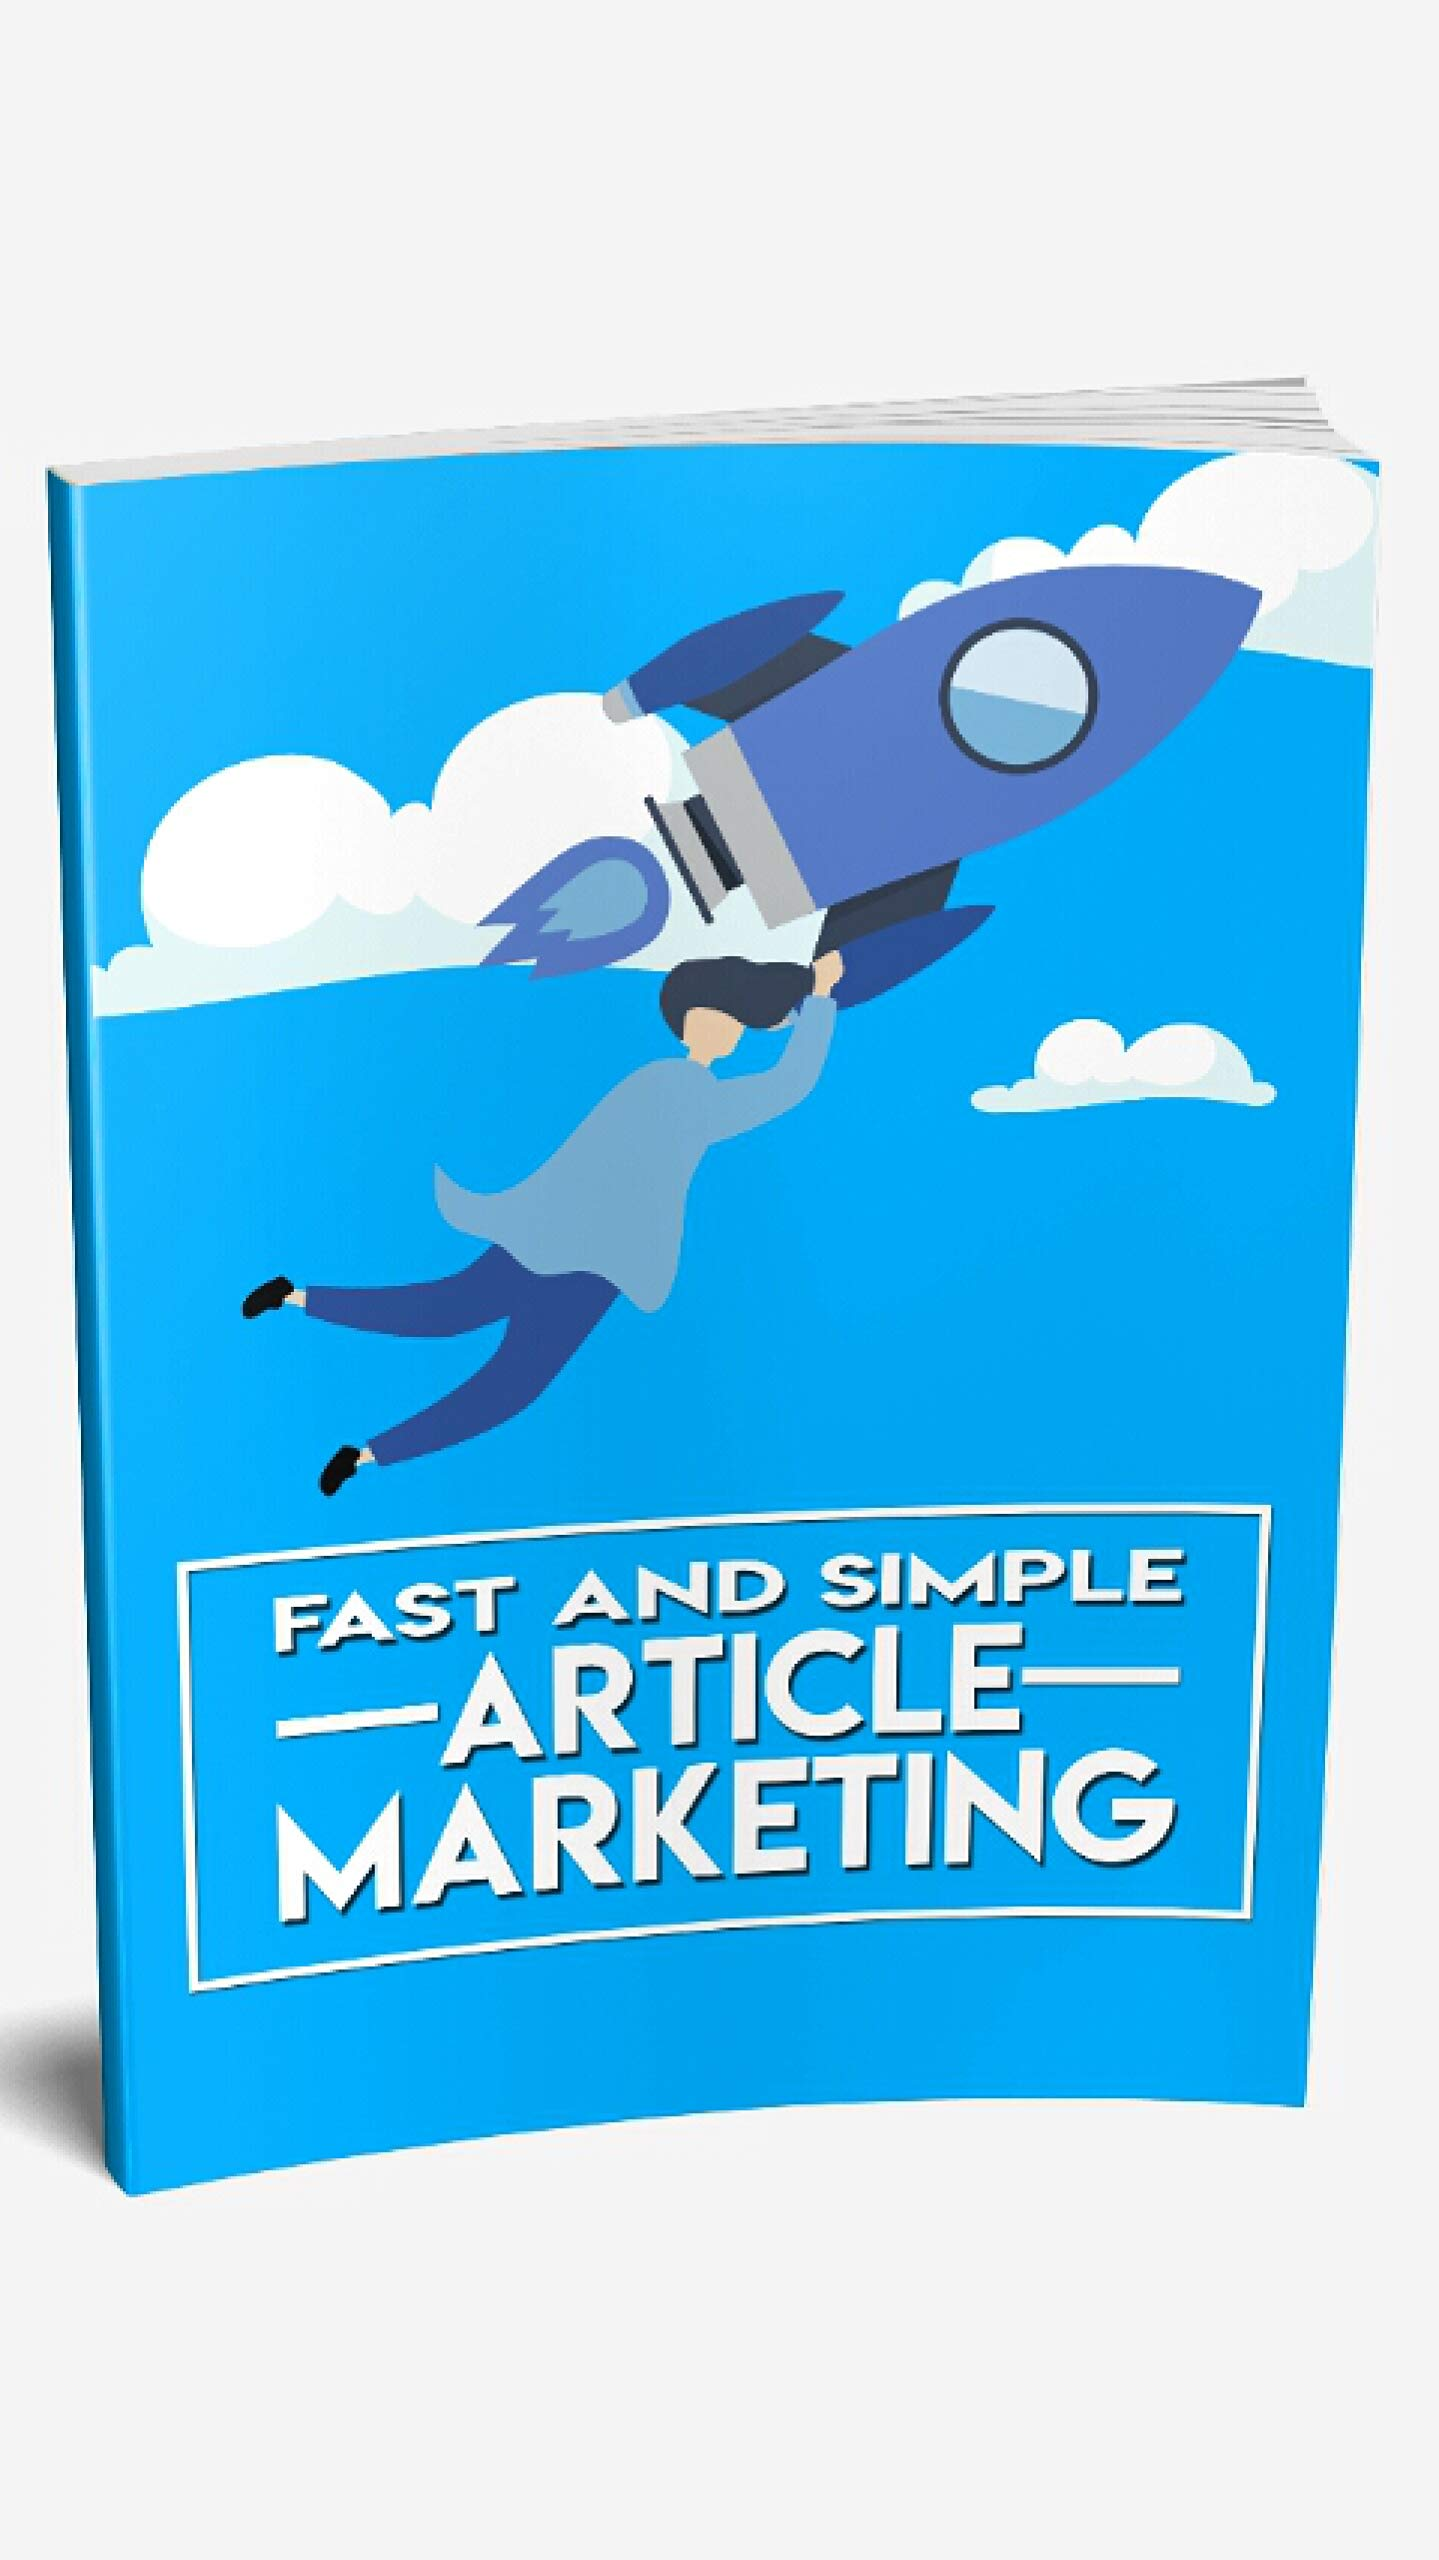 Fast and Simple Article Marketing: Fast and Simple Article Marketing